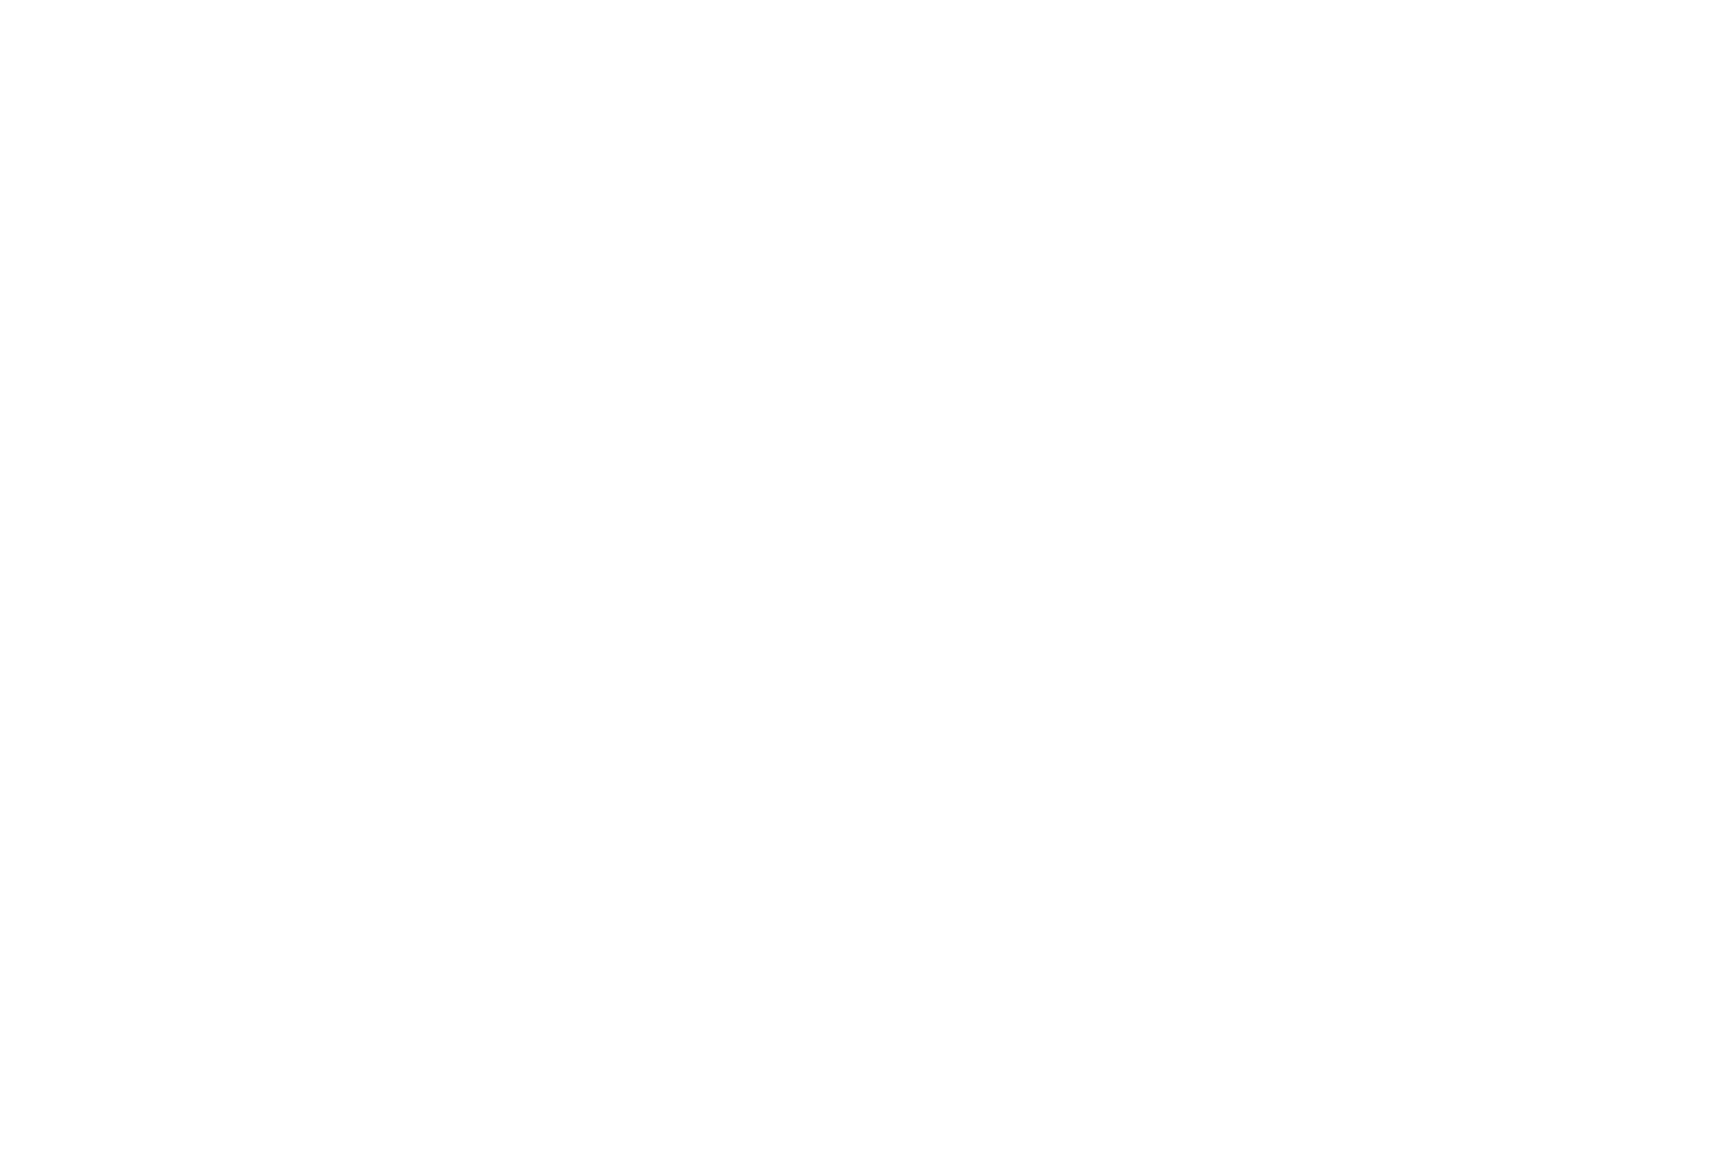 OFFICIAL SELECTION - International Wildlife Film Festival - 2018 (1).png